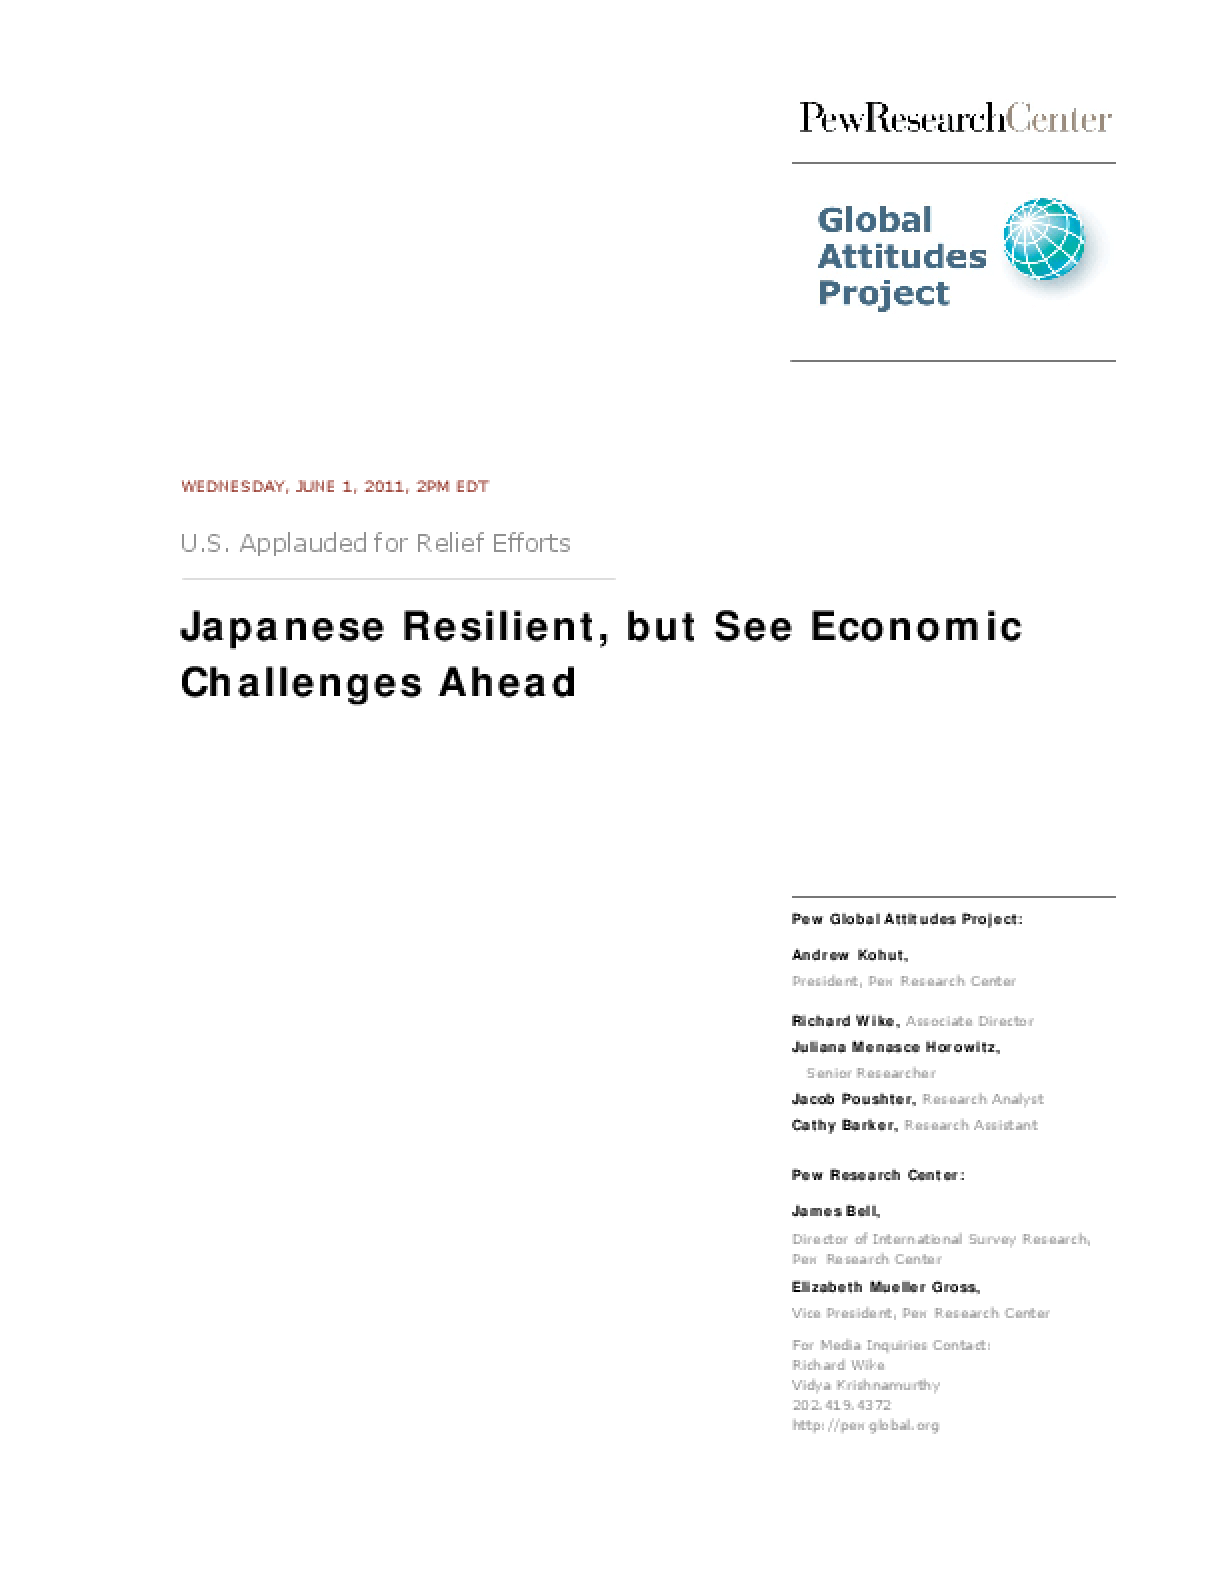 Japanese Resilient, but See Economic Challenges Ahead